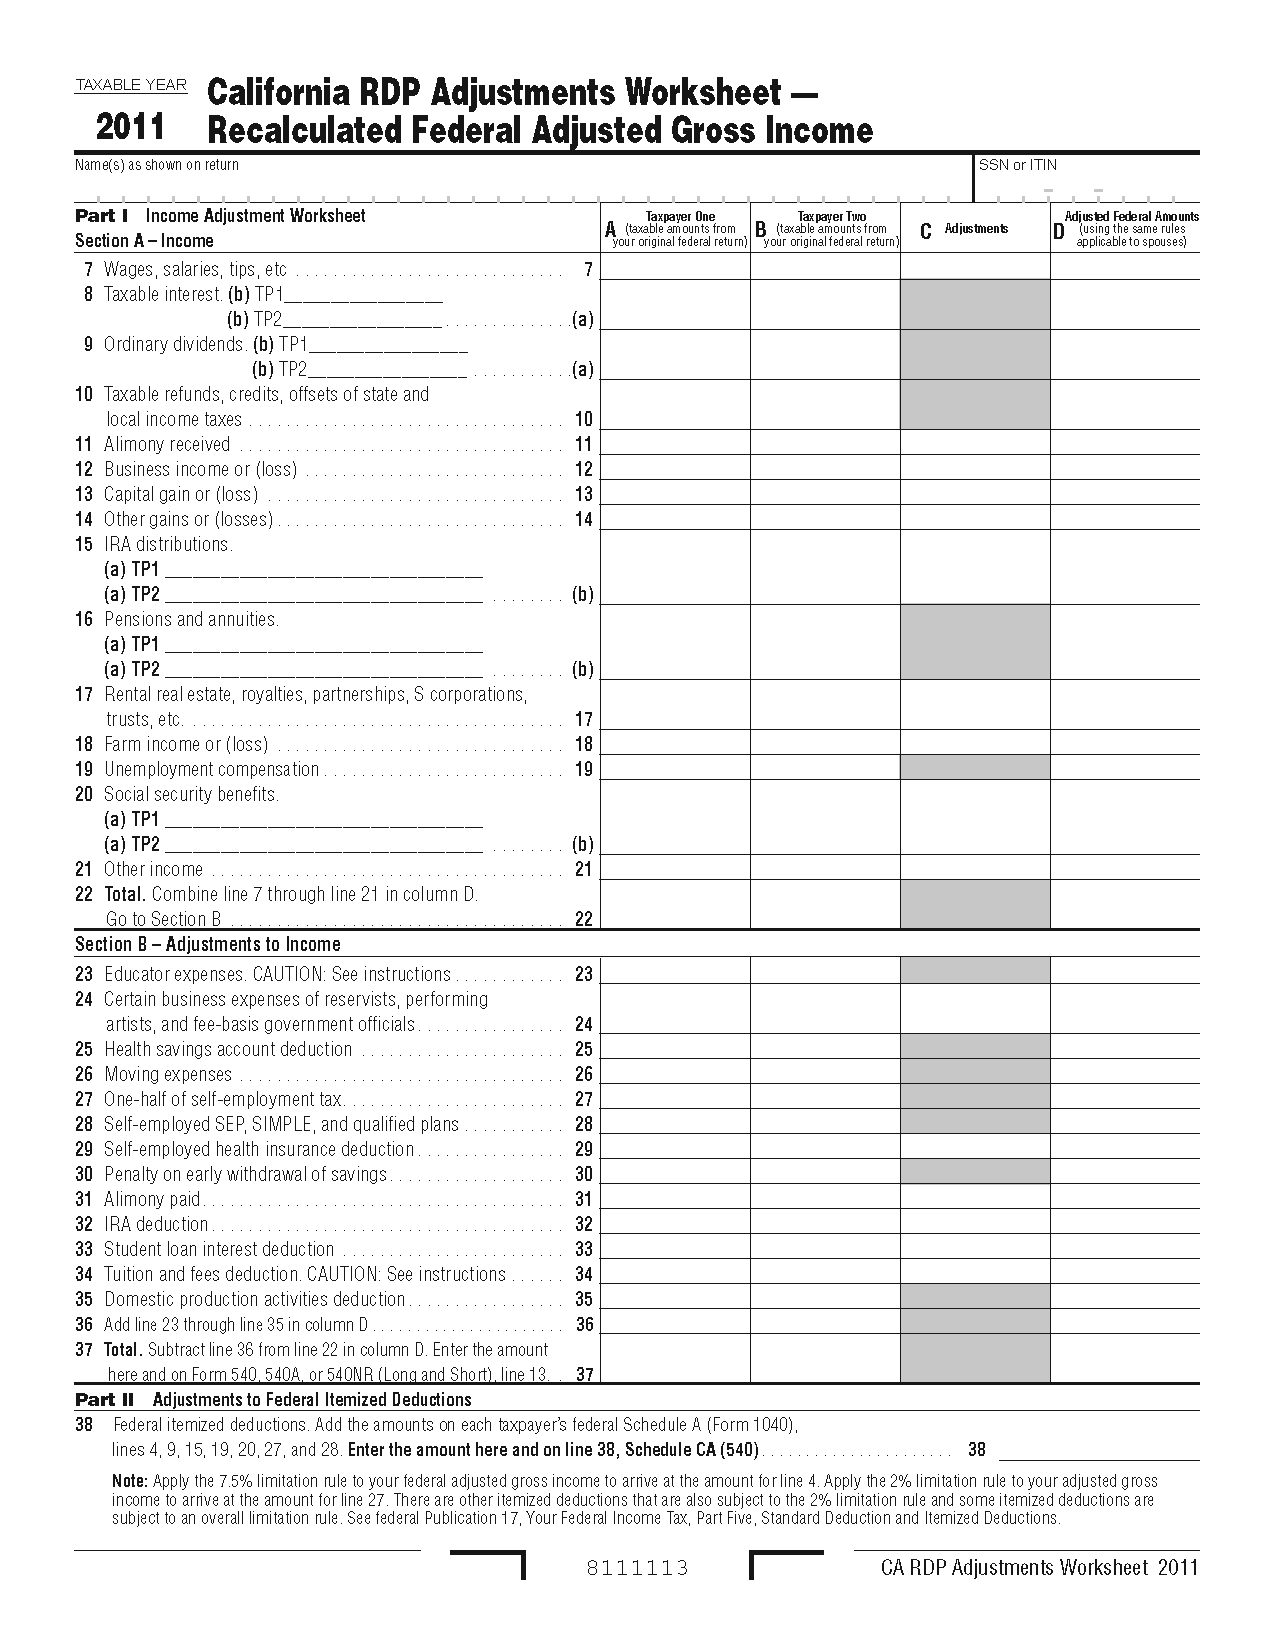 Federal Itemized Deductions Worksheet